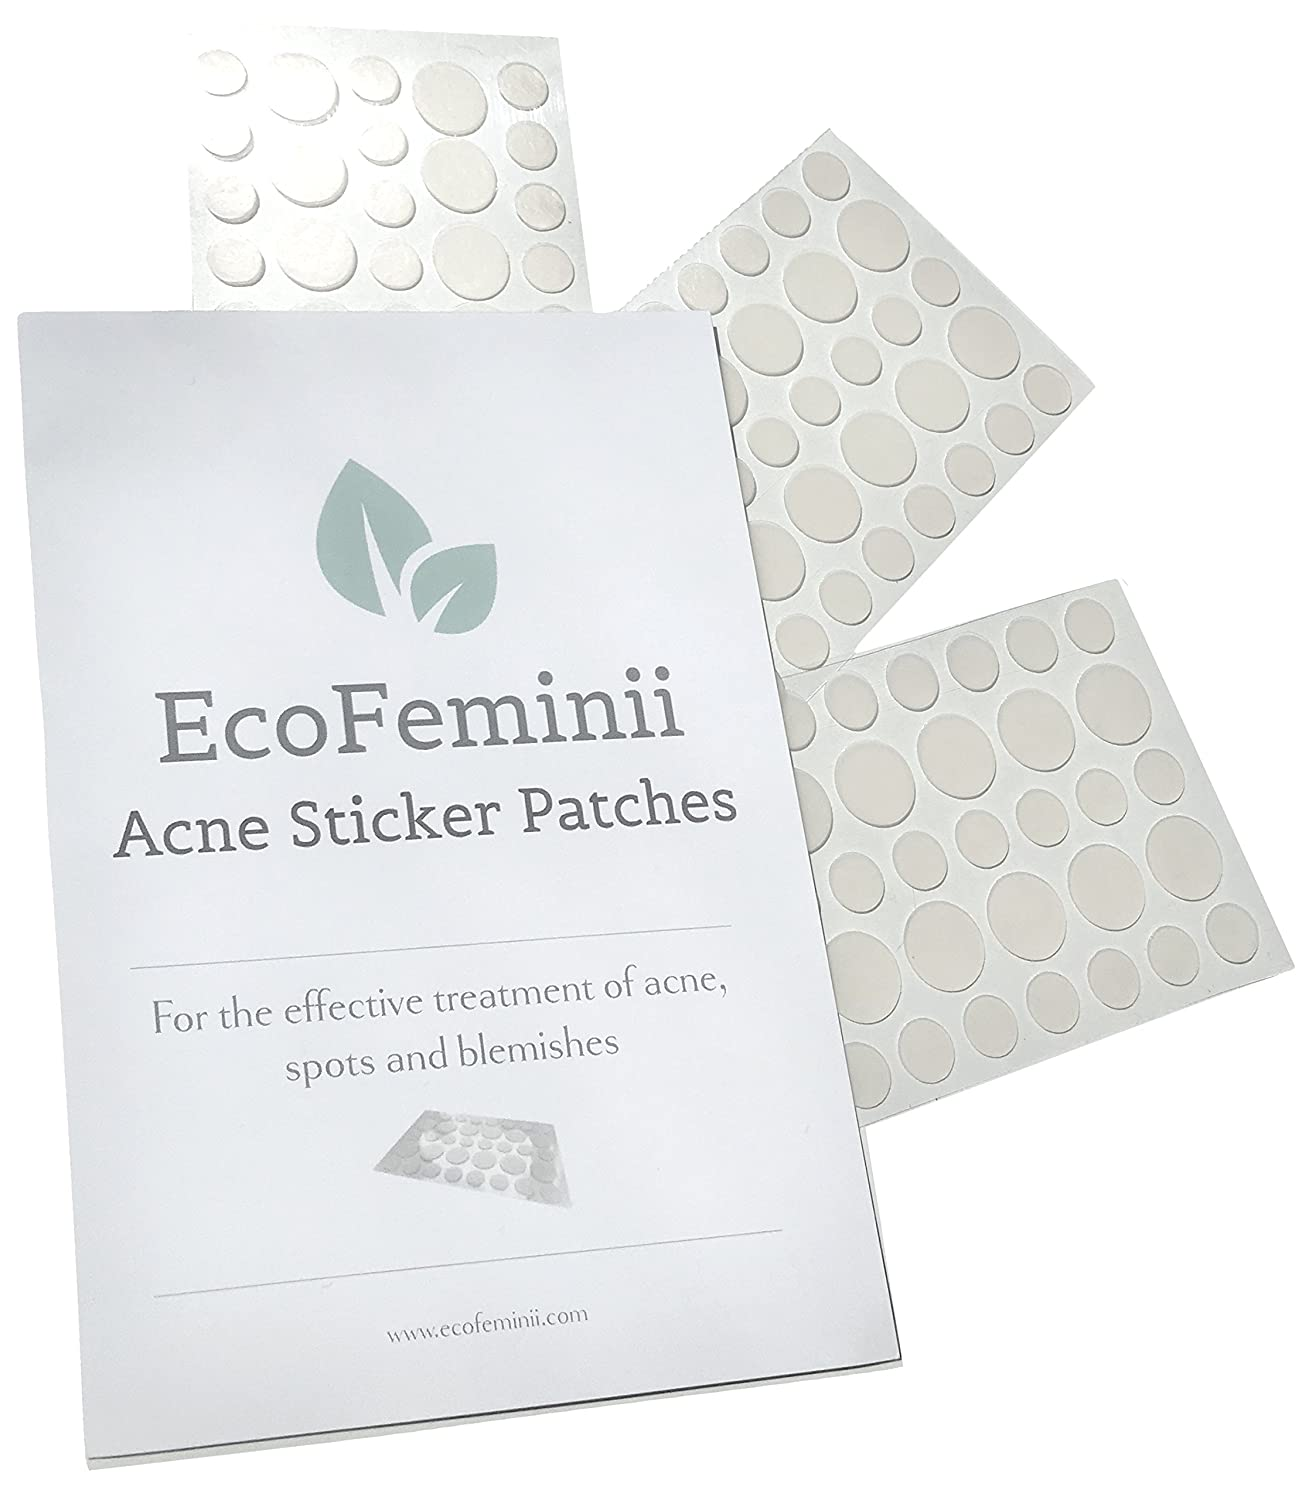 EcoFeminii Targeted Spot, Pimple & Blemish Treatment Acne Patches - 108 Count (3 Sheets) - Absorbing Hydrocolloid Covers for Quick Spot Repair - See-through Dots for Blemishes - Natural and Effective on Oily or Combination Skin - Discreet and Transpare